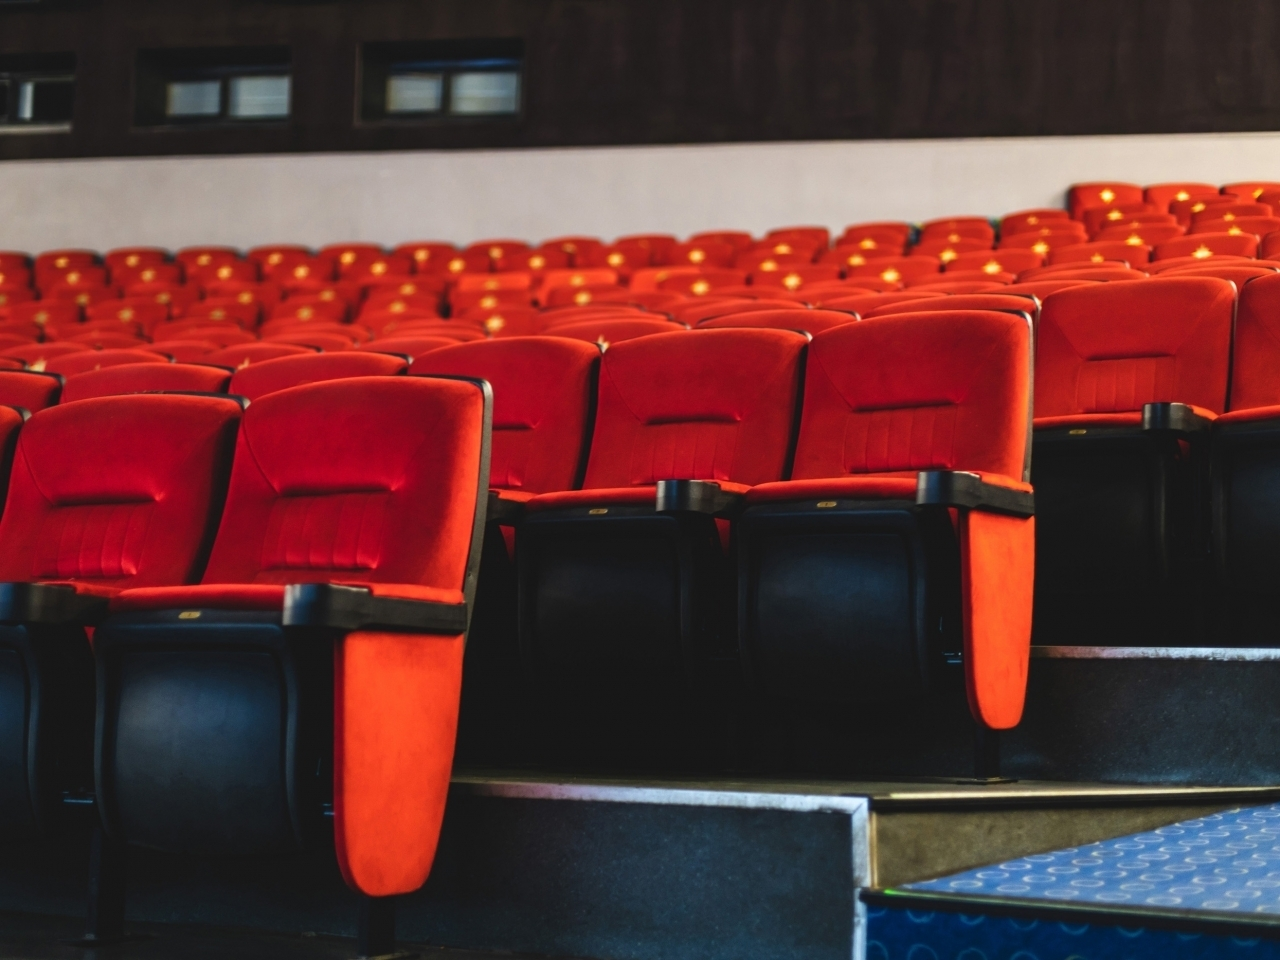 Amendments to the Film Censorship Ordinance took effect on Friday for censors to pull films endangering national security. Image: Shutterstock